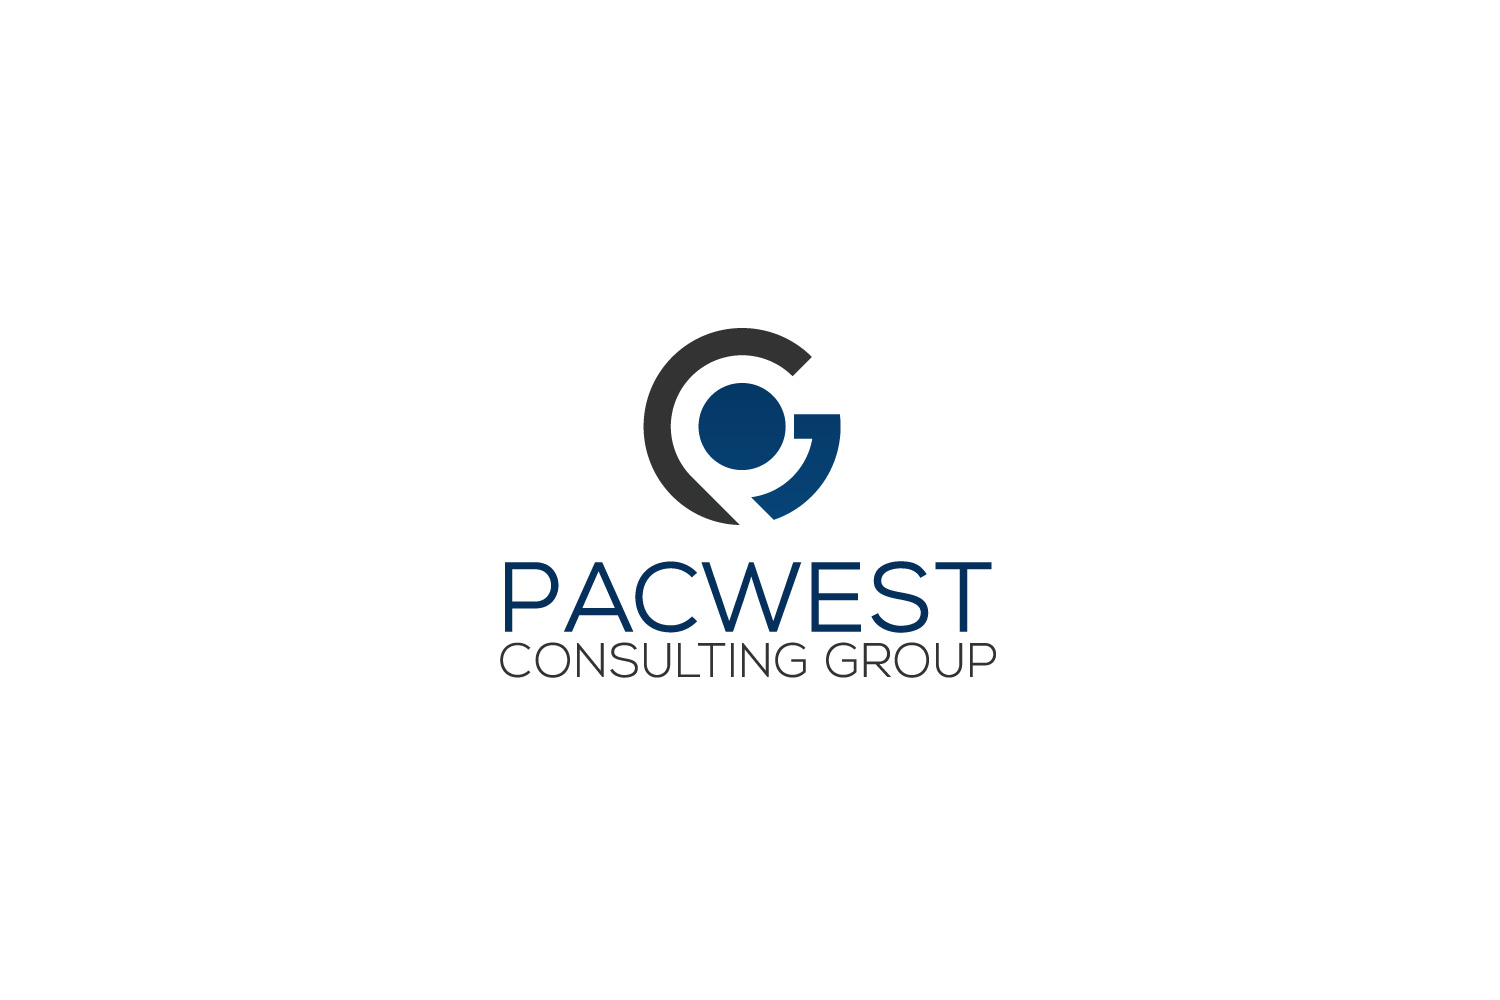 Logo Design by MD SHOHIDUL ISLAM - Entry No. 38 in the Logo Design Contest Imaginative Logo Design for Pacwest Consulting Group.